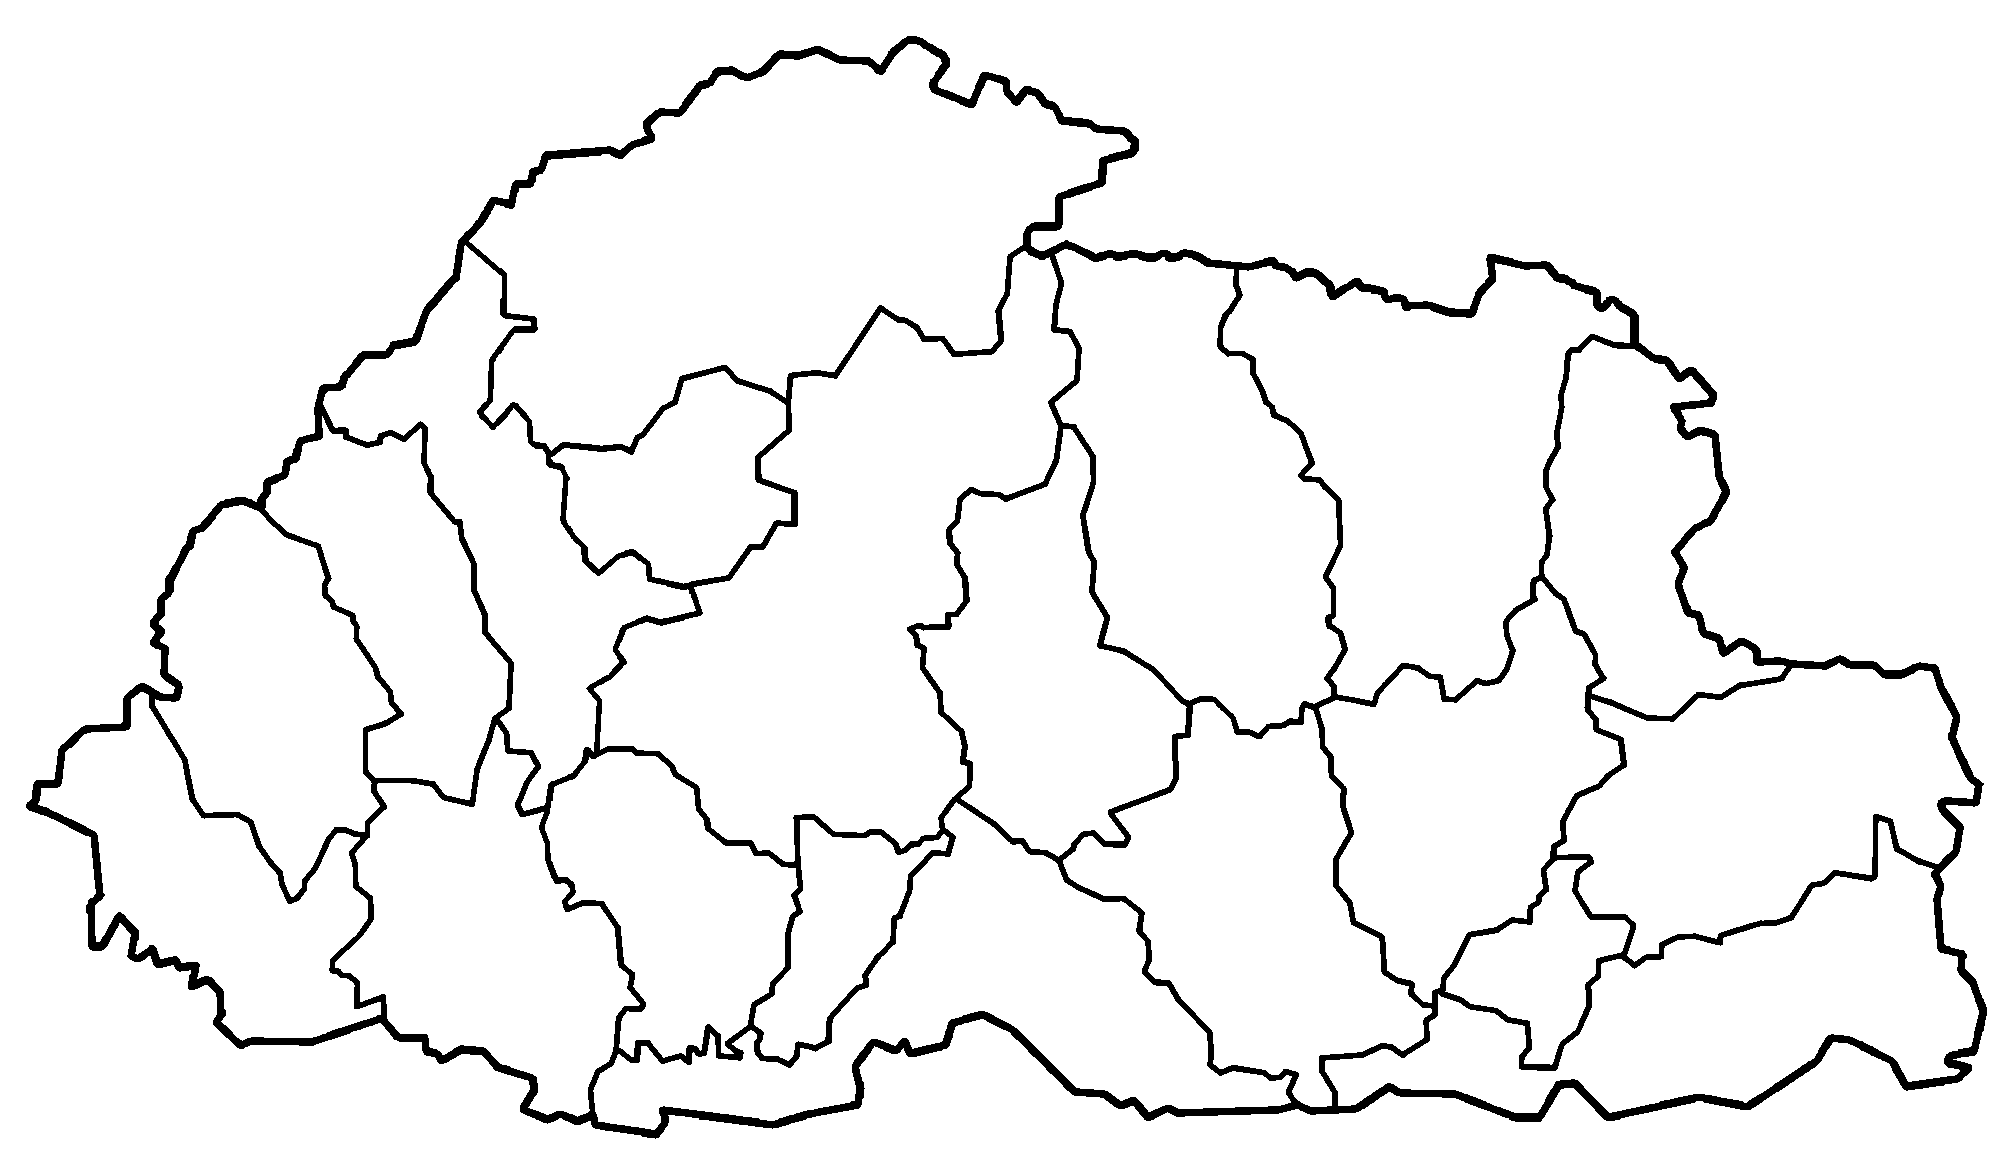 FileBhutan Districts Blankpng Wikimedia Commons - Map of bhutan with districts